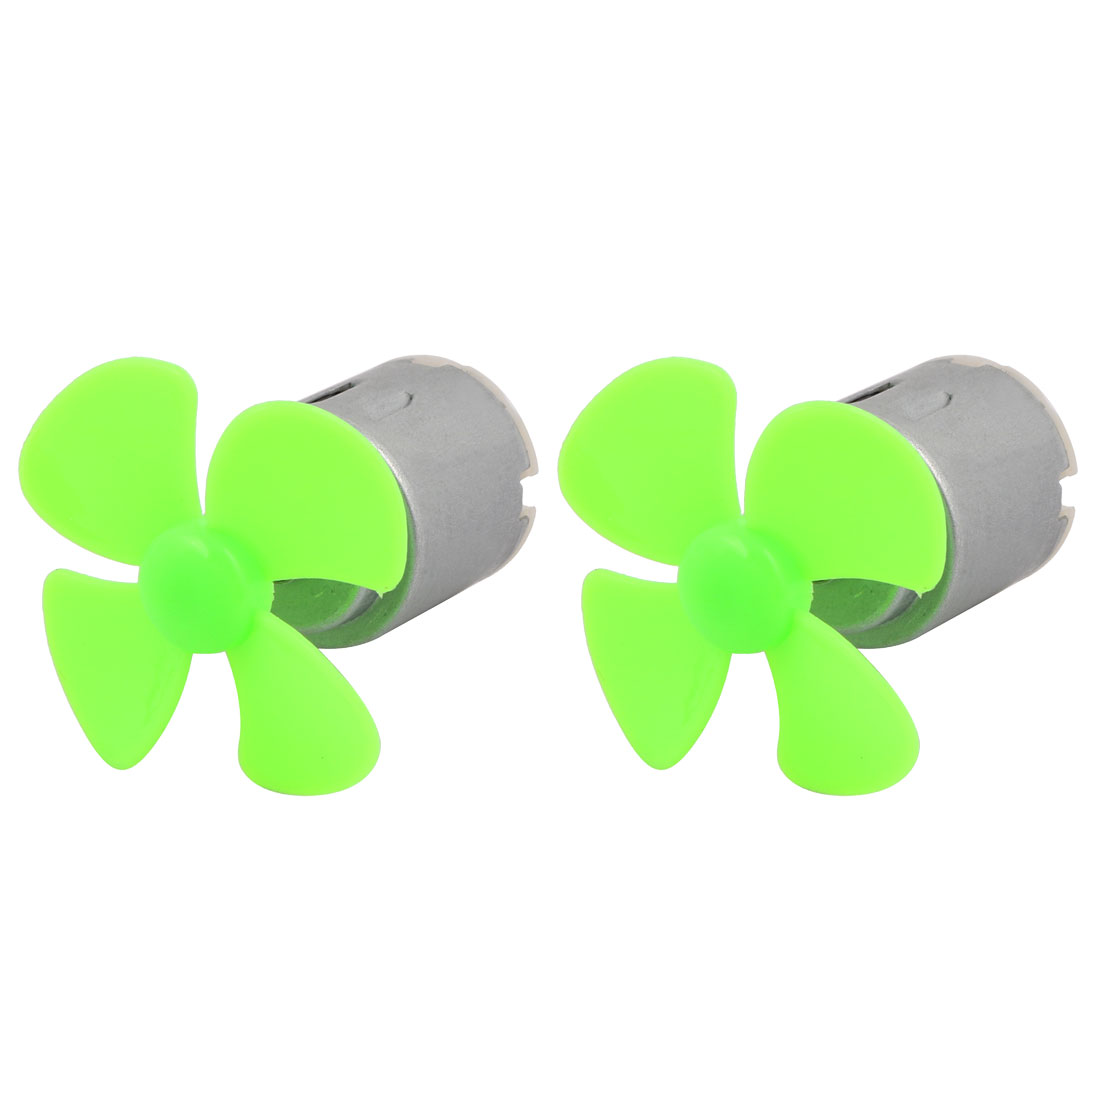 2pcs DC 3V 0.13A 14000RPM Strong Force Motor 4 Vanes 40mm Green Propeller for RC Aircraft